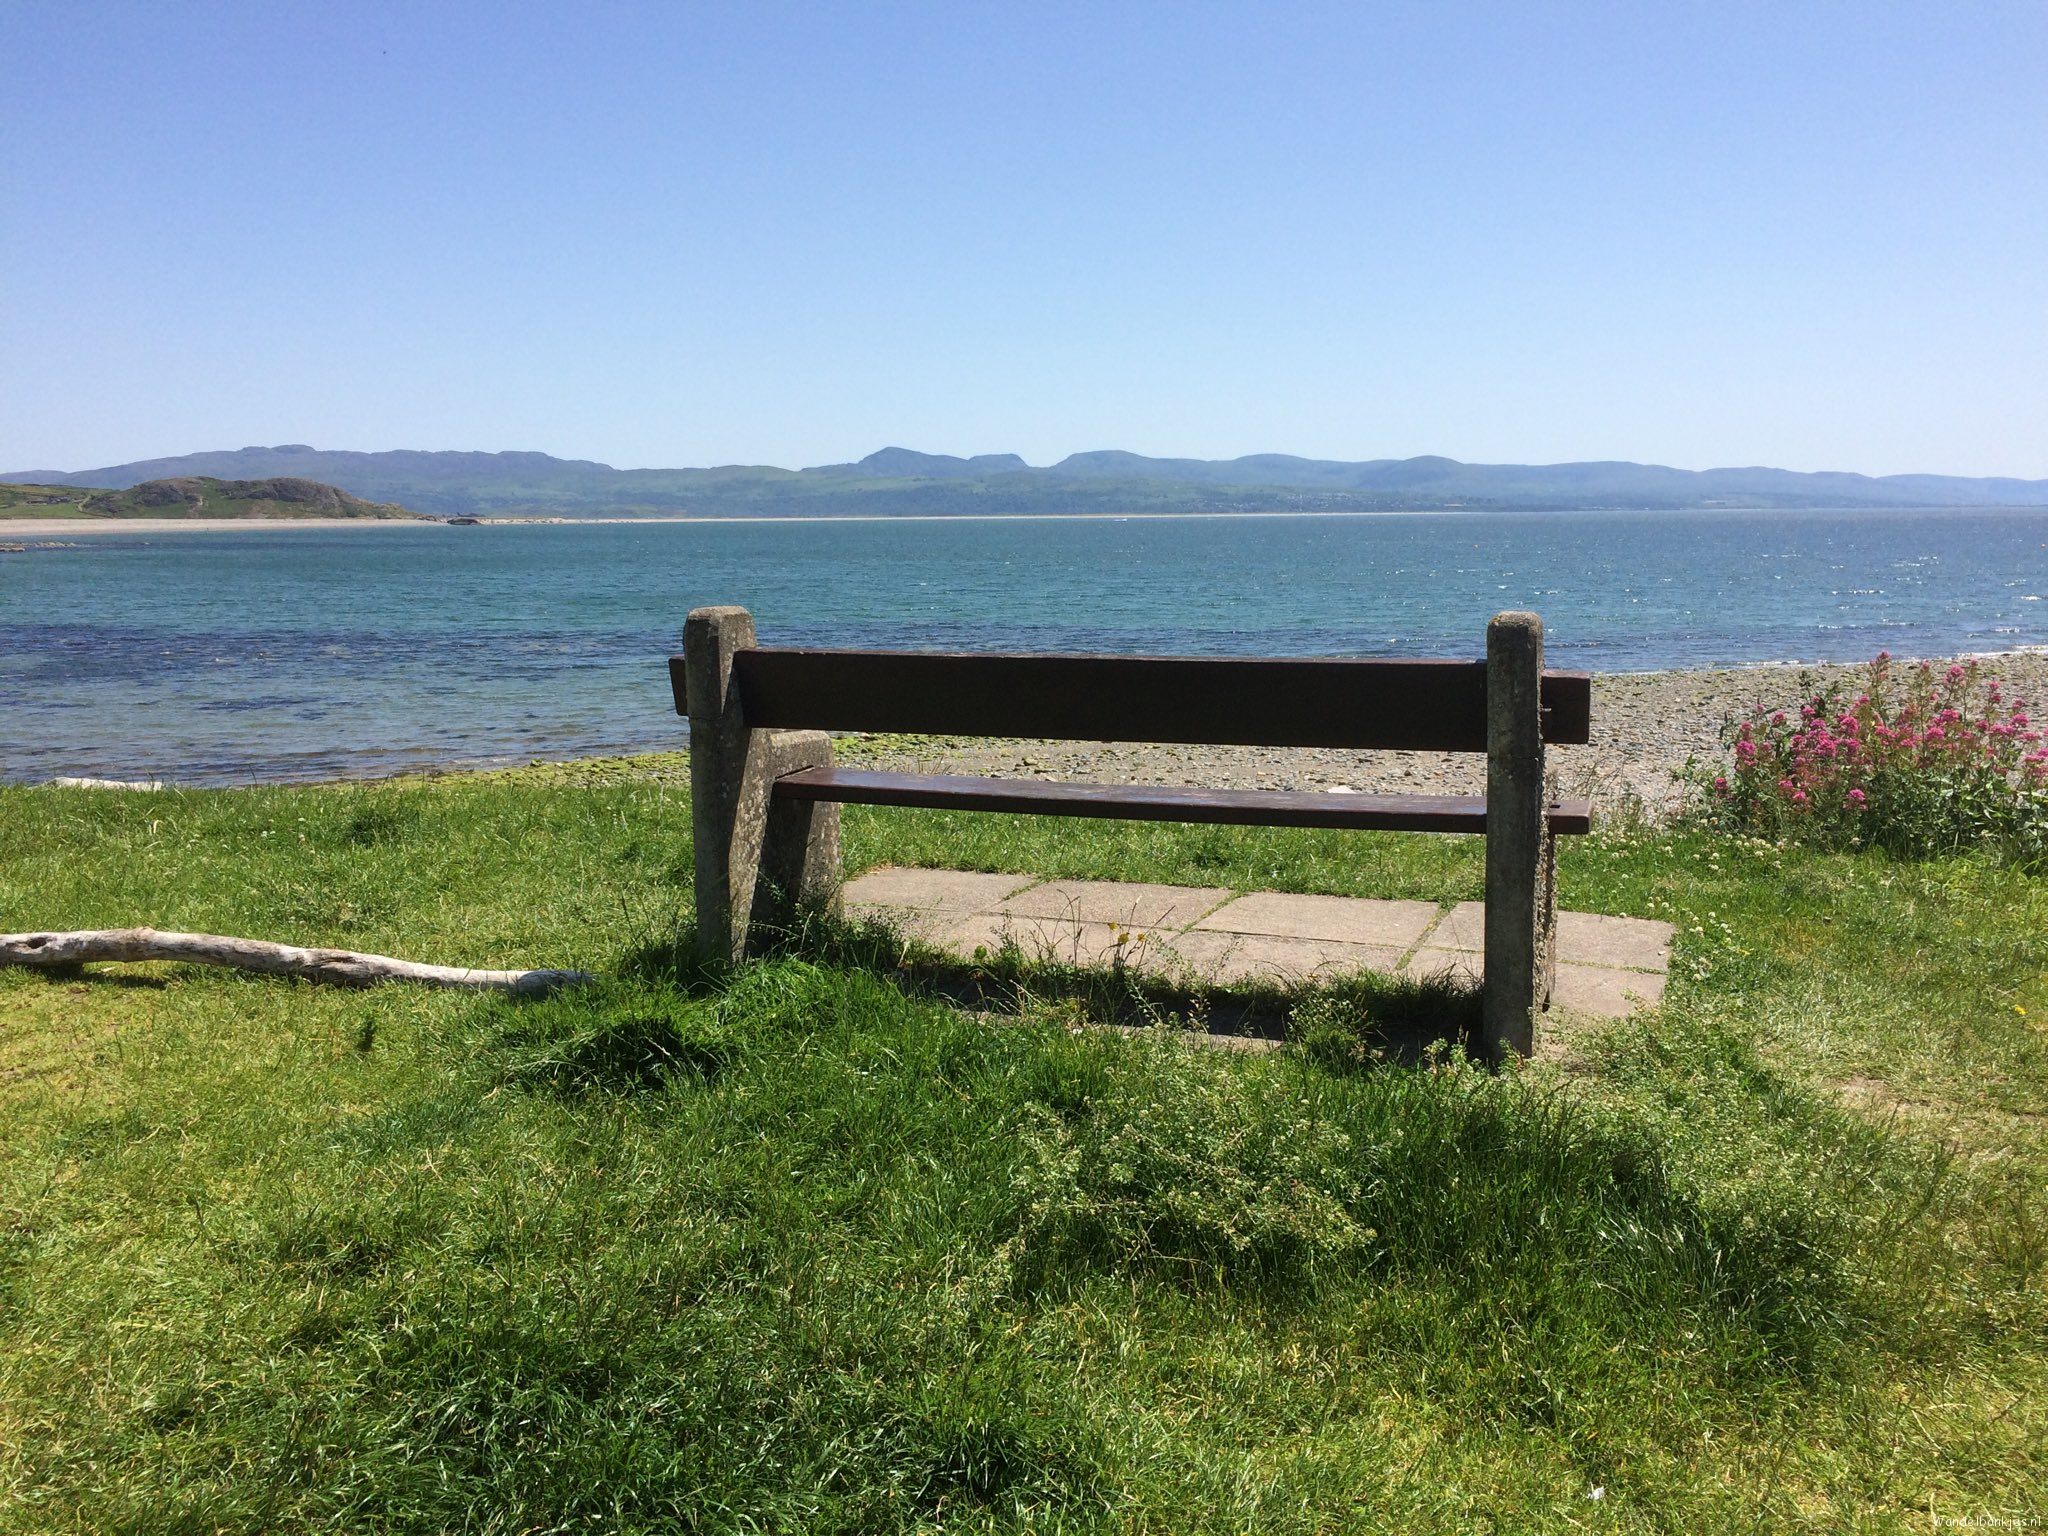 rt-femkenijveldt-a-bench-with-a-view-criccieth-wales-%e2%81%a6wandelbankjes%e2%81%a9-https-t-co-fjiqjrf3pi